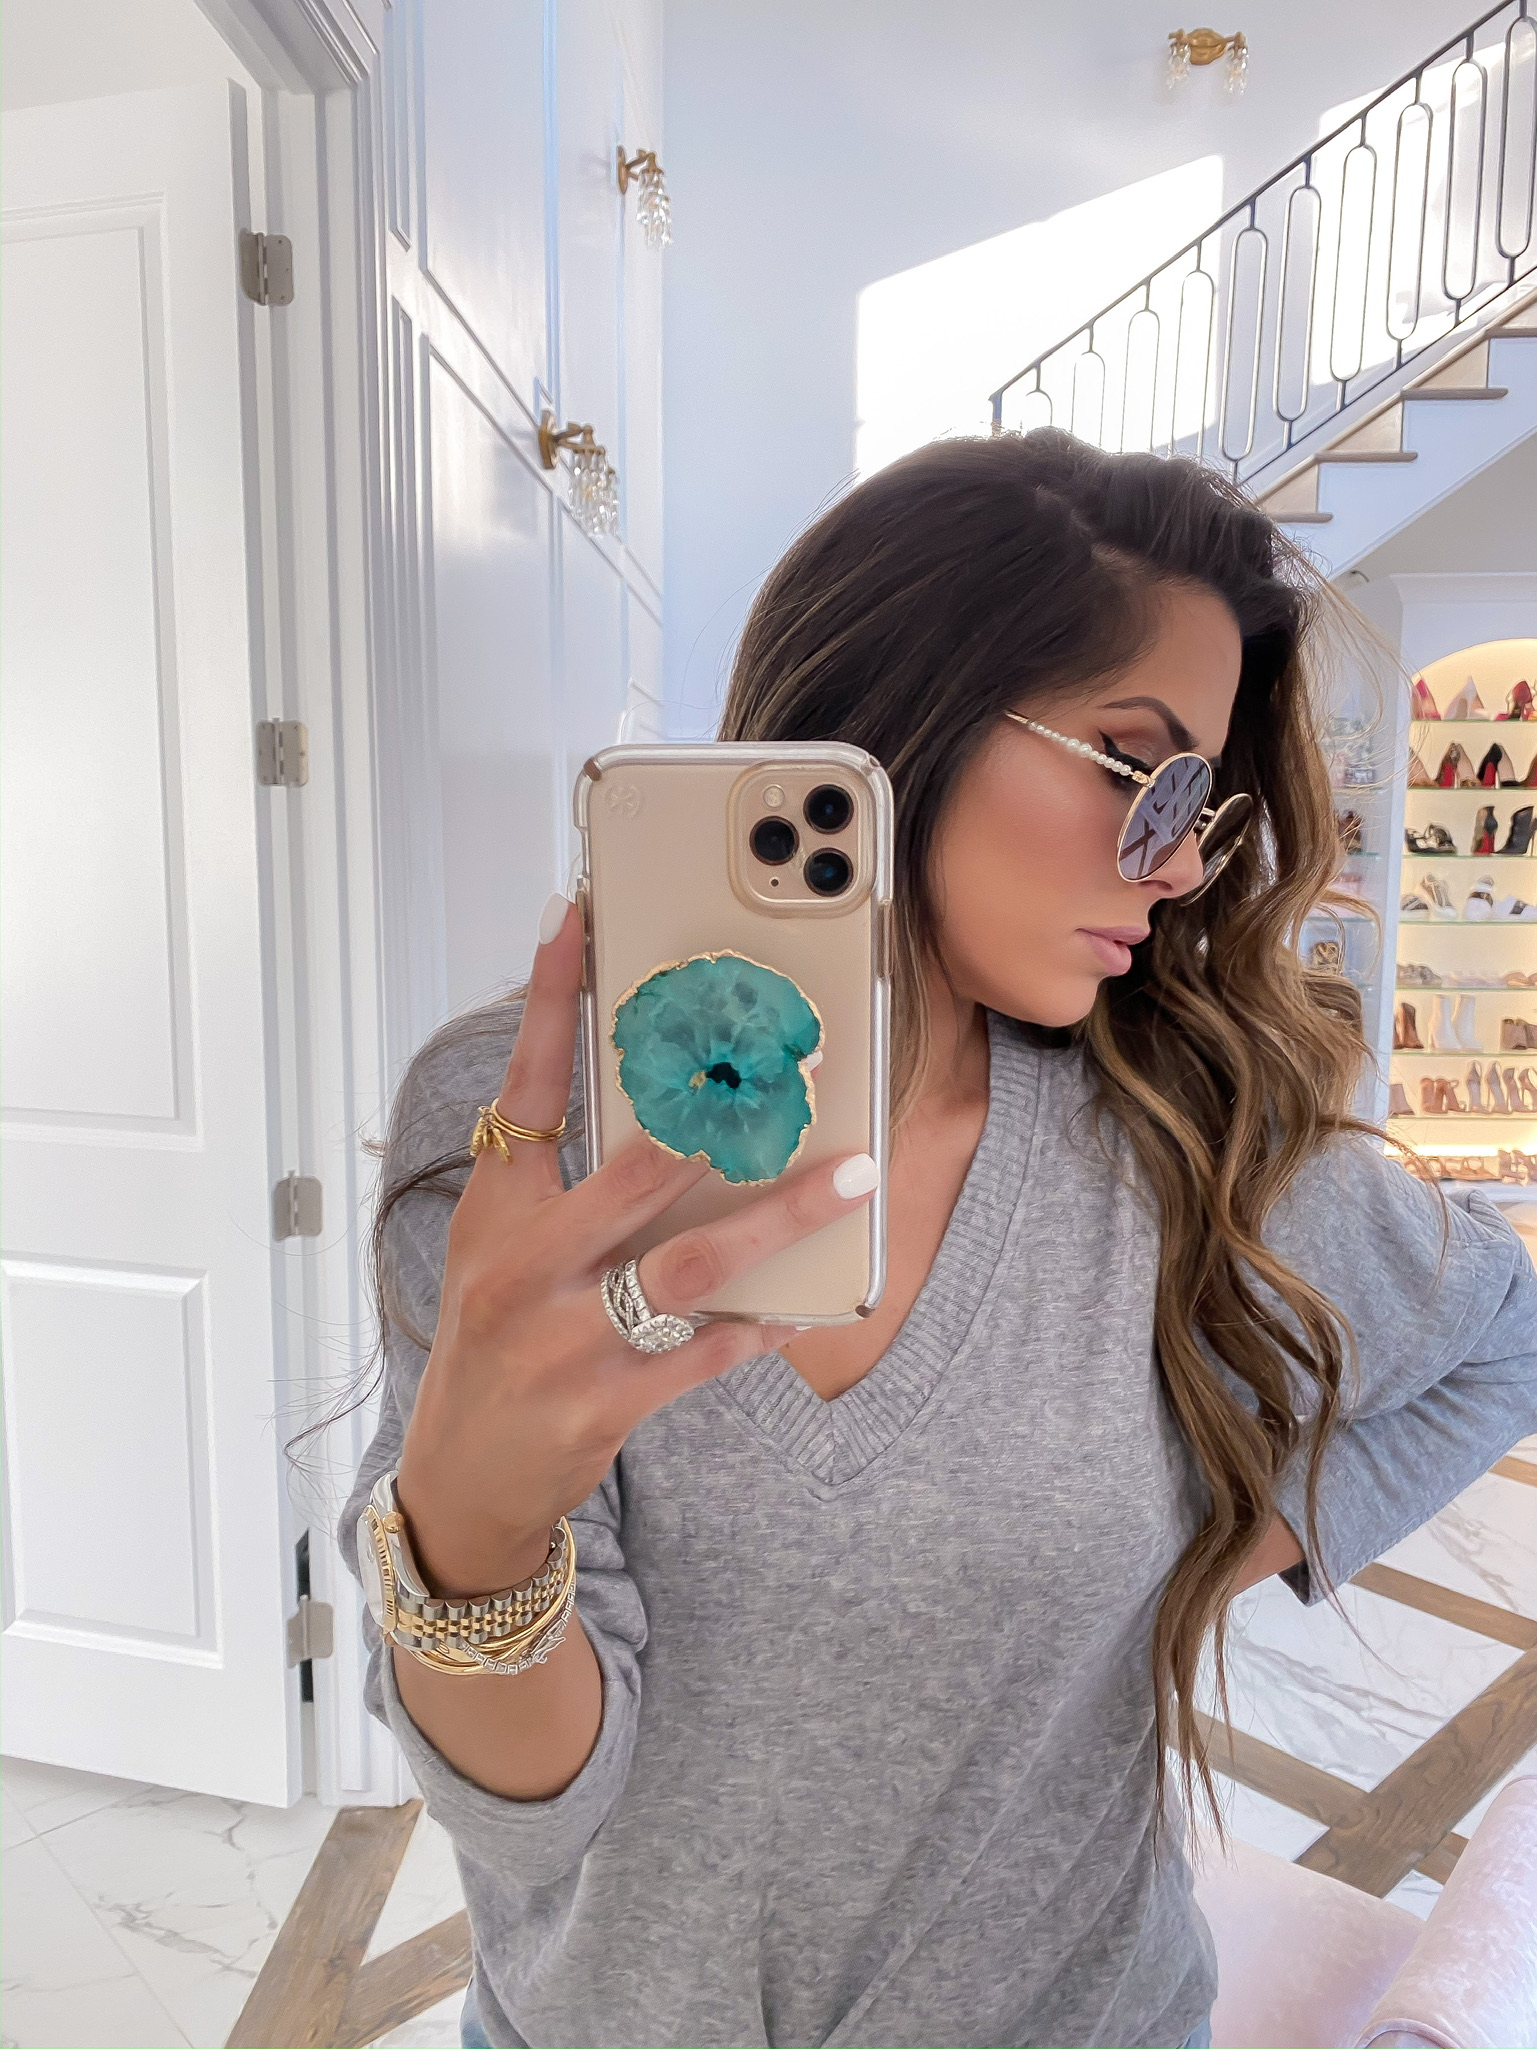 Blogging Newsletter by popular US life and style blog, The Sweetest Thing: image of a woman wearing a Rolex watch, Dior and Cartier stack, Nordstrom V-Neck Sweater ALL IN FAVOR, Shopbop One Teaspoon Hendrix Bandit Shorts , and H&M pearl embellished Sunglasses.